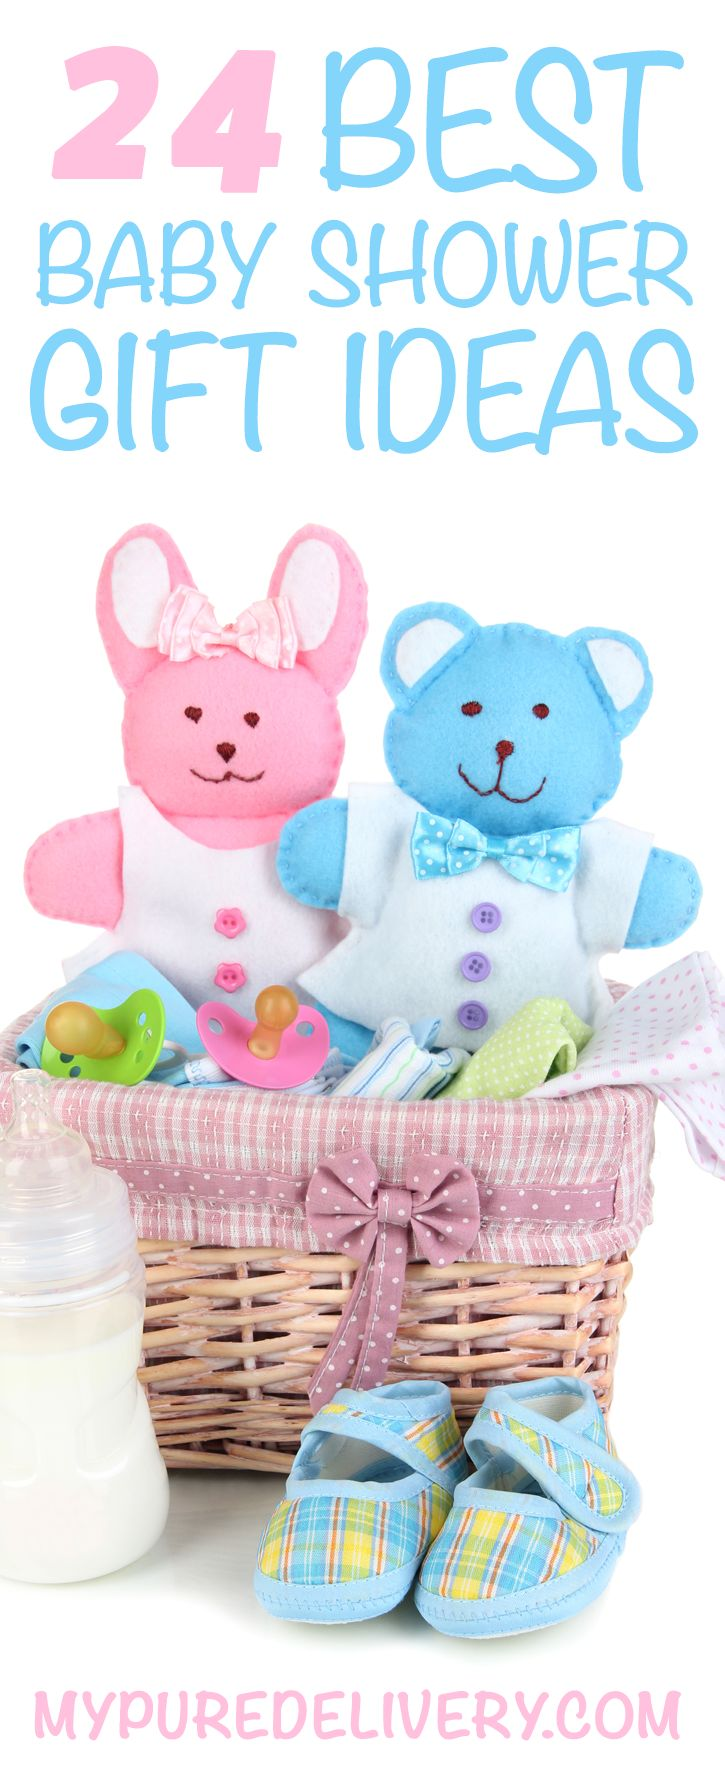 Baby Shower Gifts Expectations ~ Best baby shower gift ideas gifts